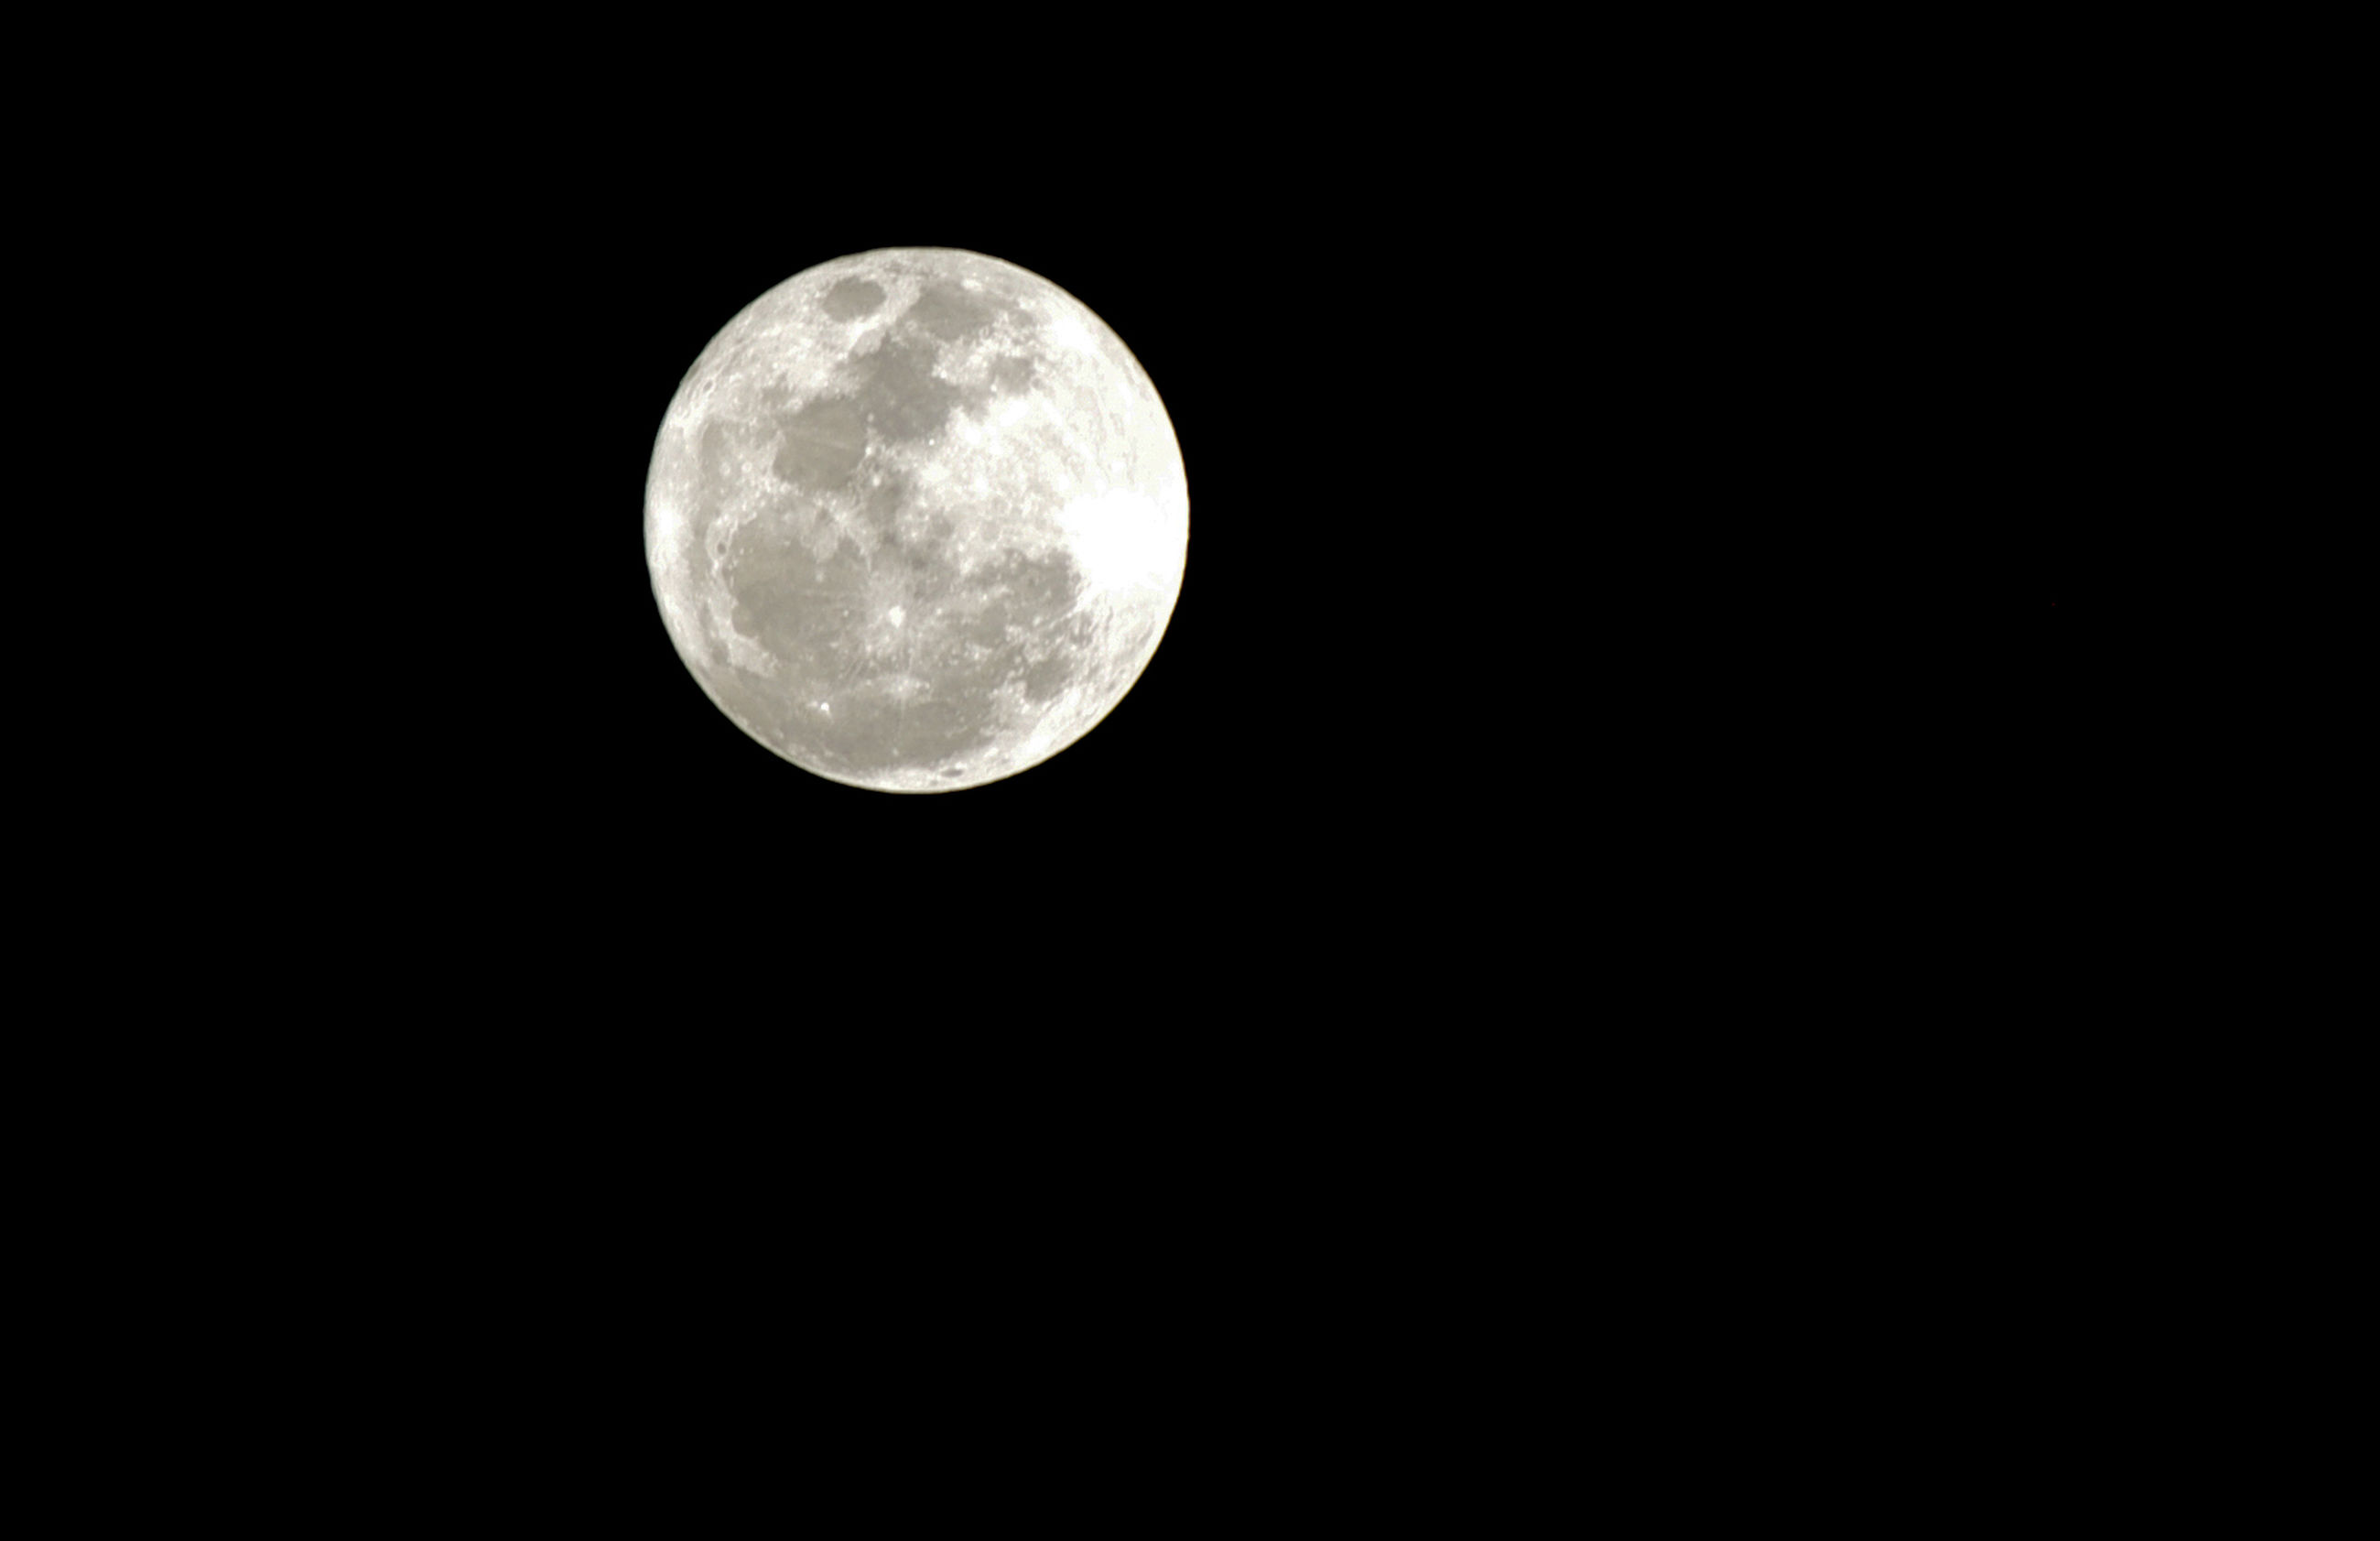 moon, nature, full moon, low angle view, moon surface, night, astronomy, tranquility, clear sky, scenics, sky, beauty in nature, no people, black background, space, planetary moon, outdoors